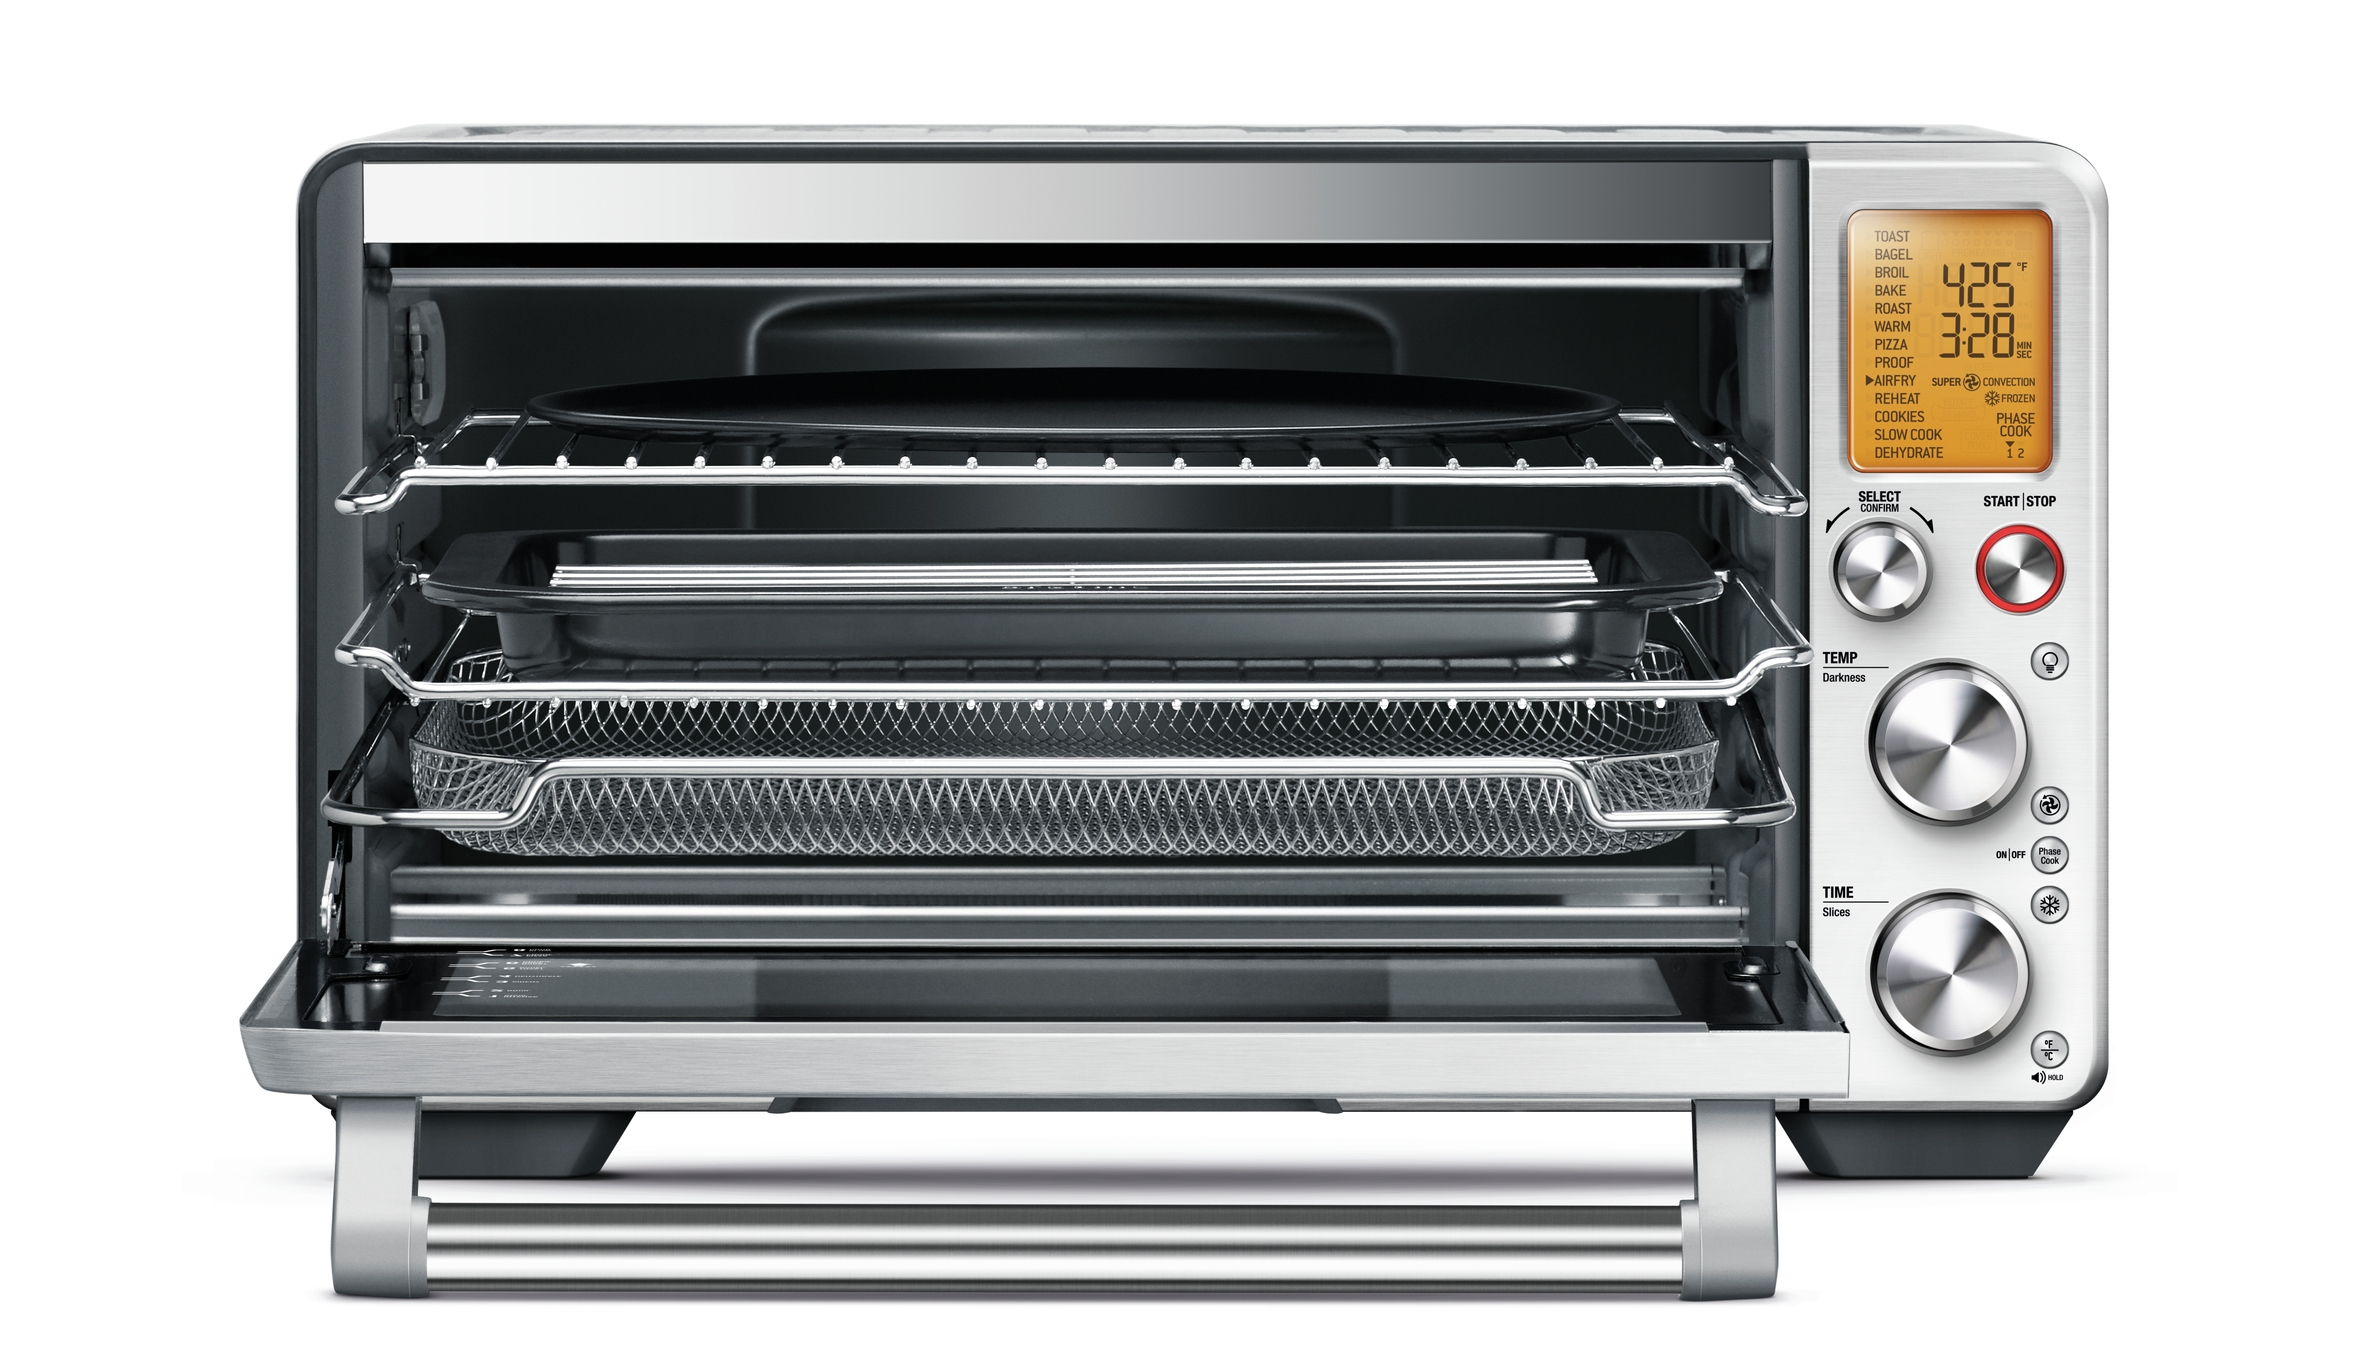 BOV900BSS - Rack Positions - The Smart Oven Air.jpeg